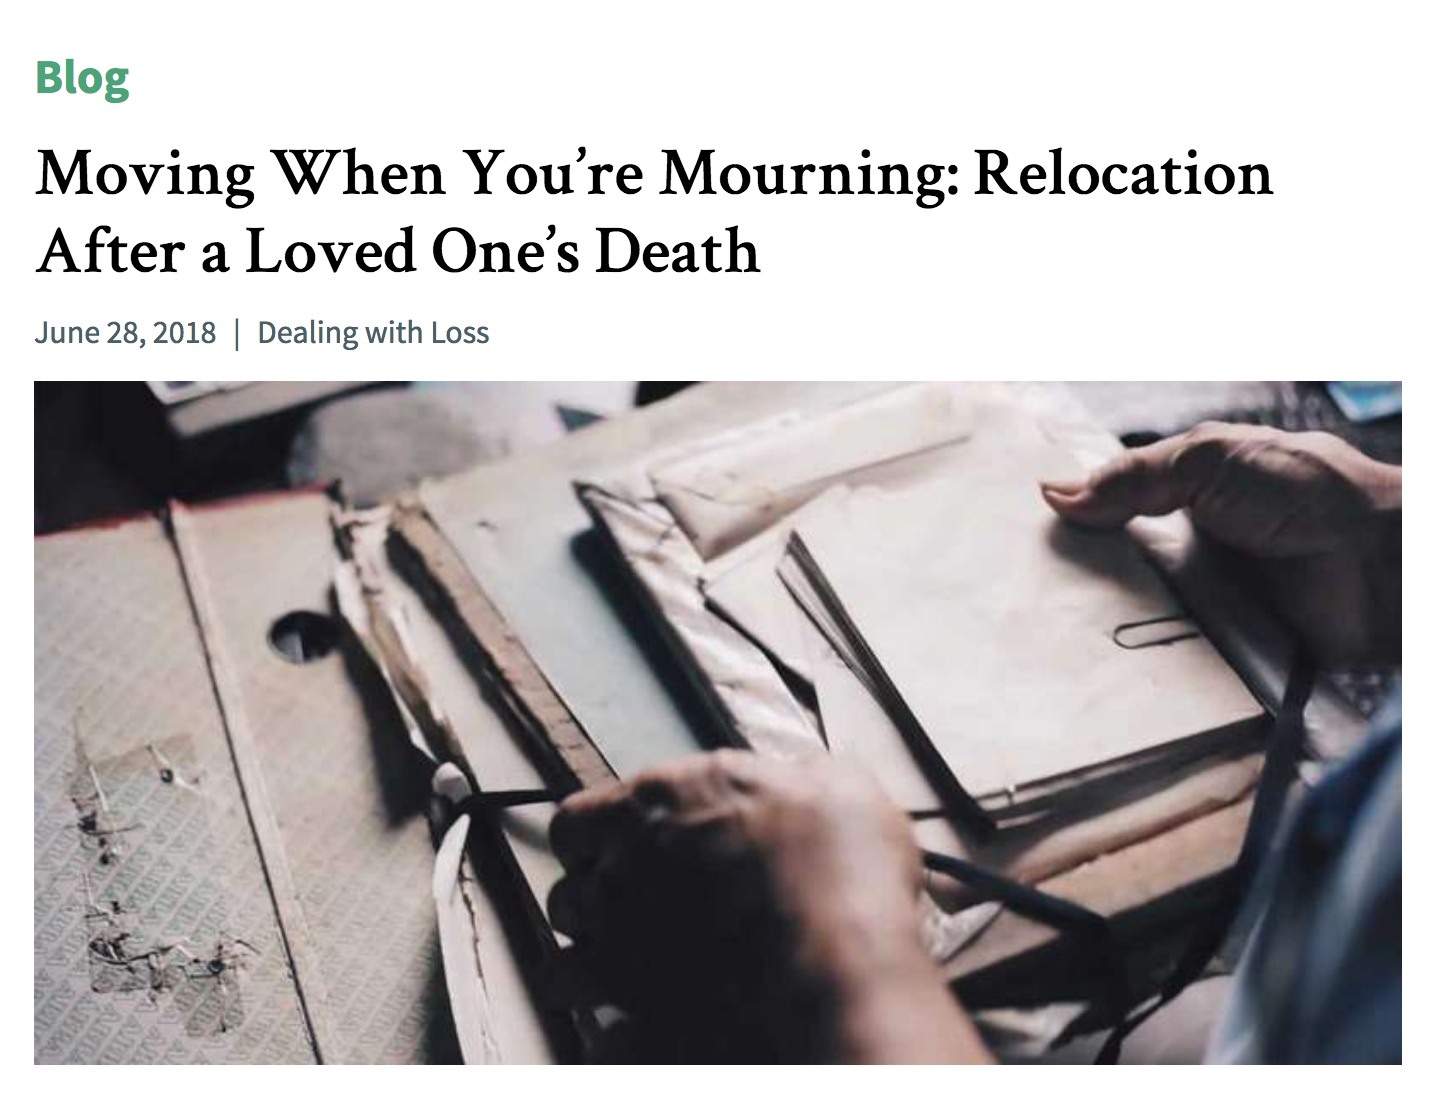 Screenshot_2018-07-23 Moving When You're Mourning Relocation After a Loved One's Death